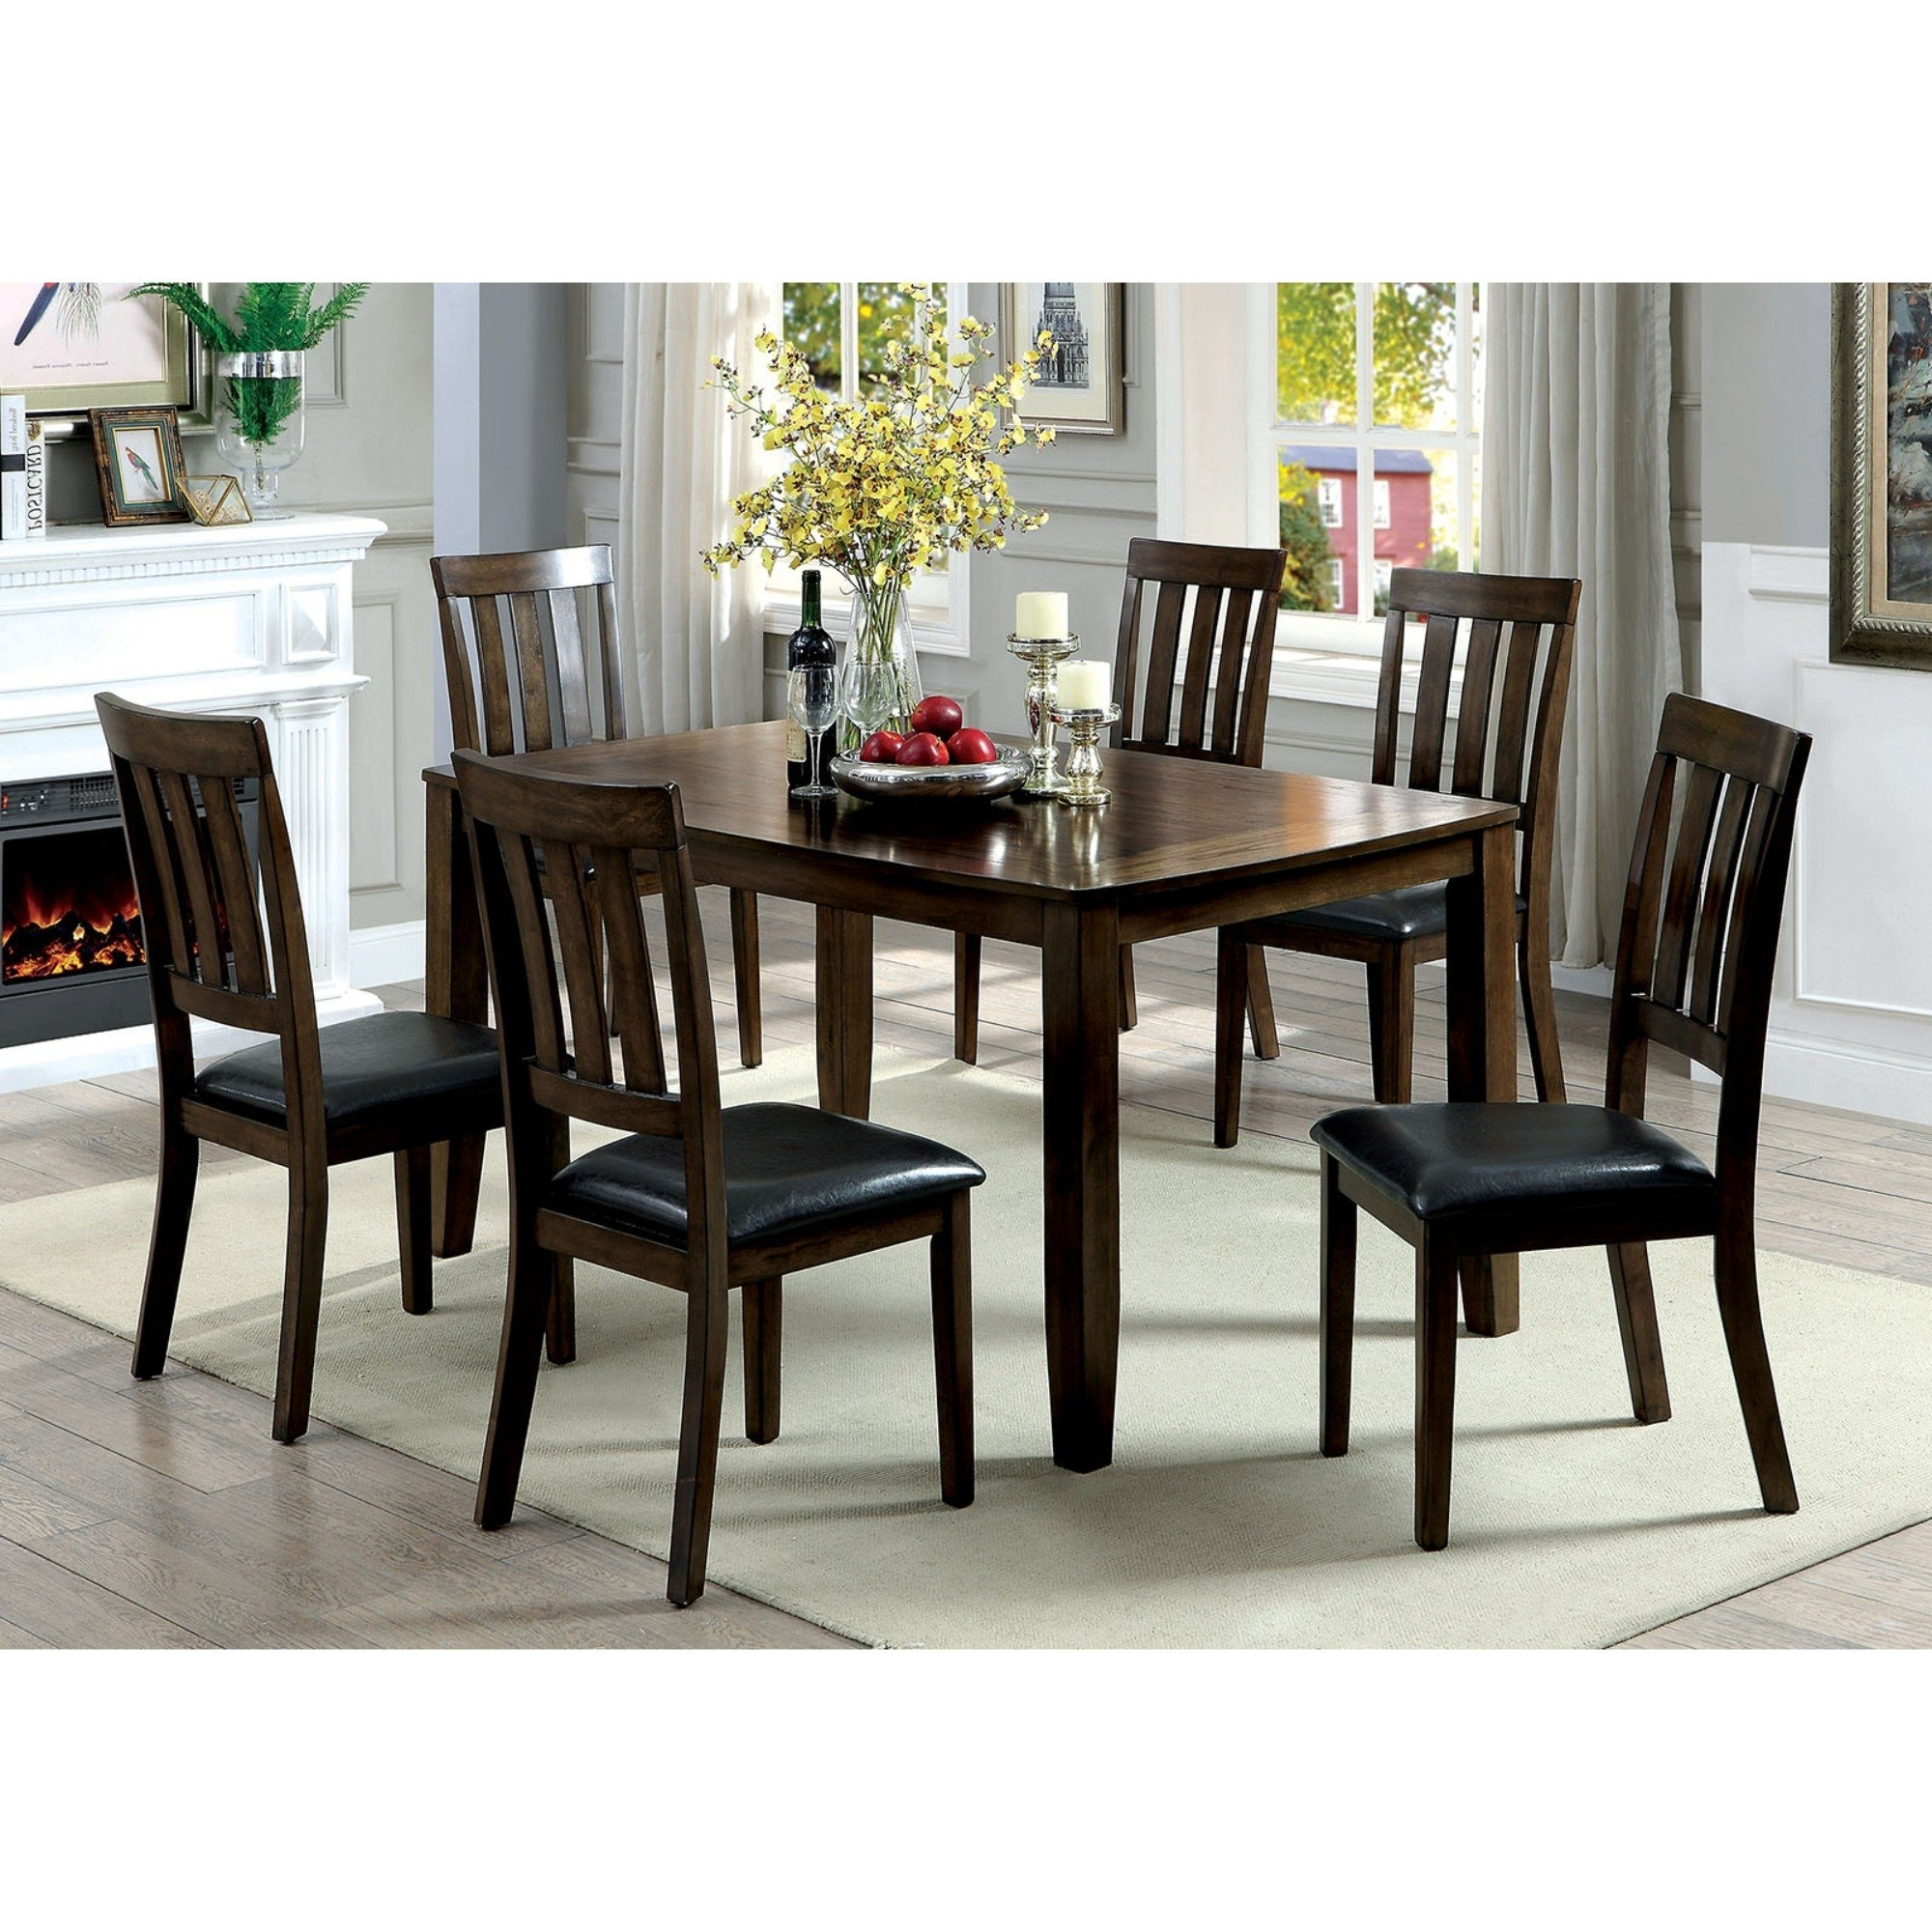 Preferred Millwood Pines Devon Wooden 7 Piece Counter Height Dining Table Set With Regard To Candice Ii 7 Piece Extension Rectangular Dining Sets With Slat Back Side Chairs (View 20 of 25)